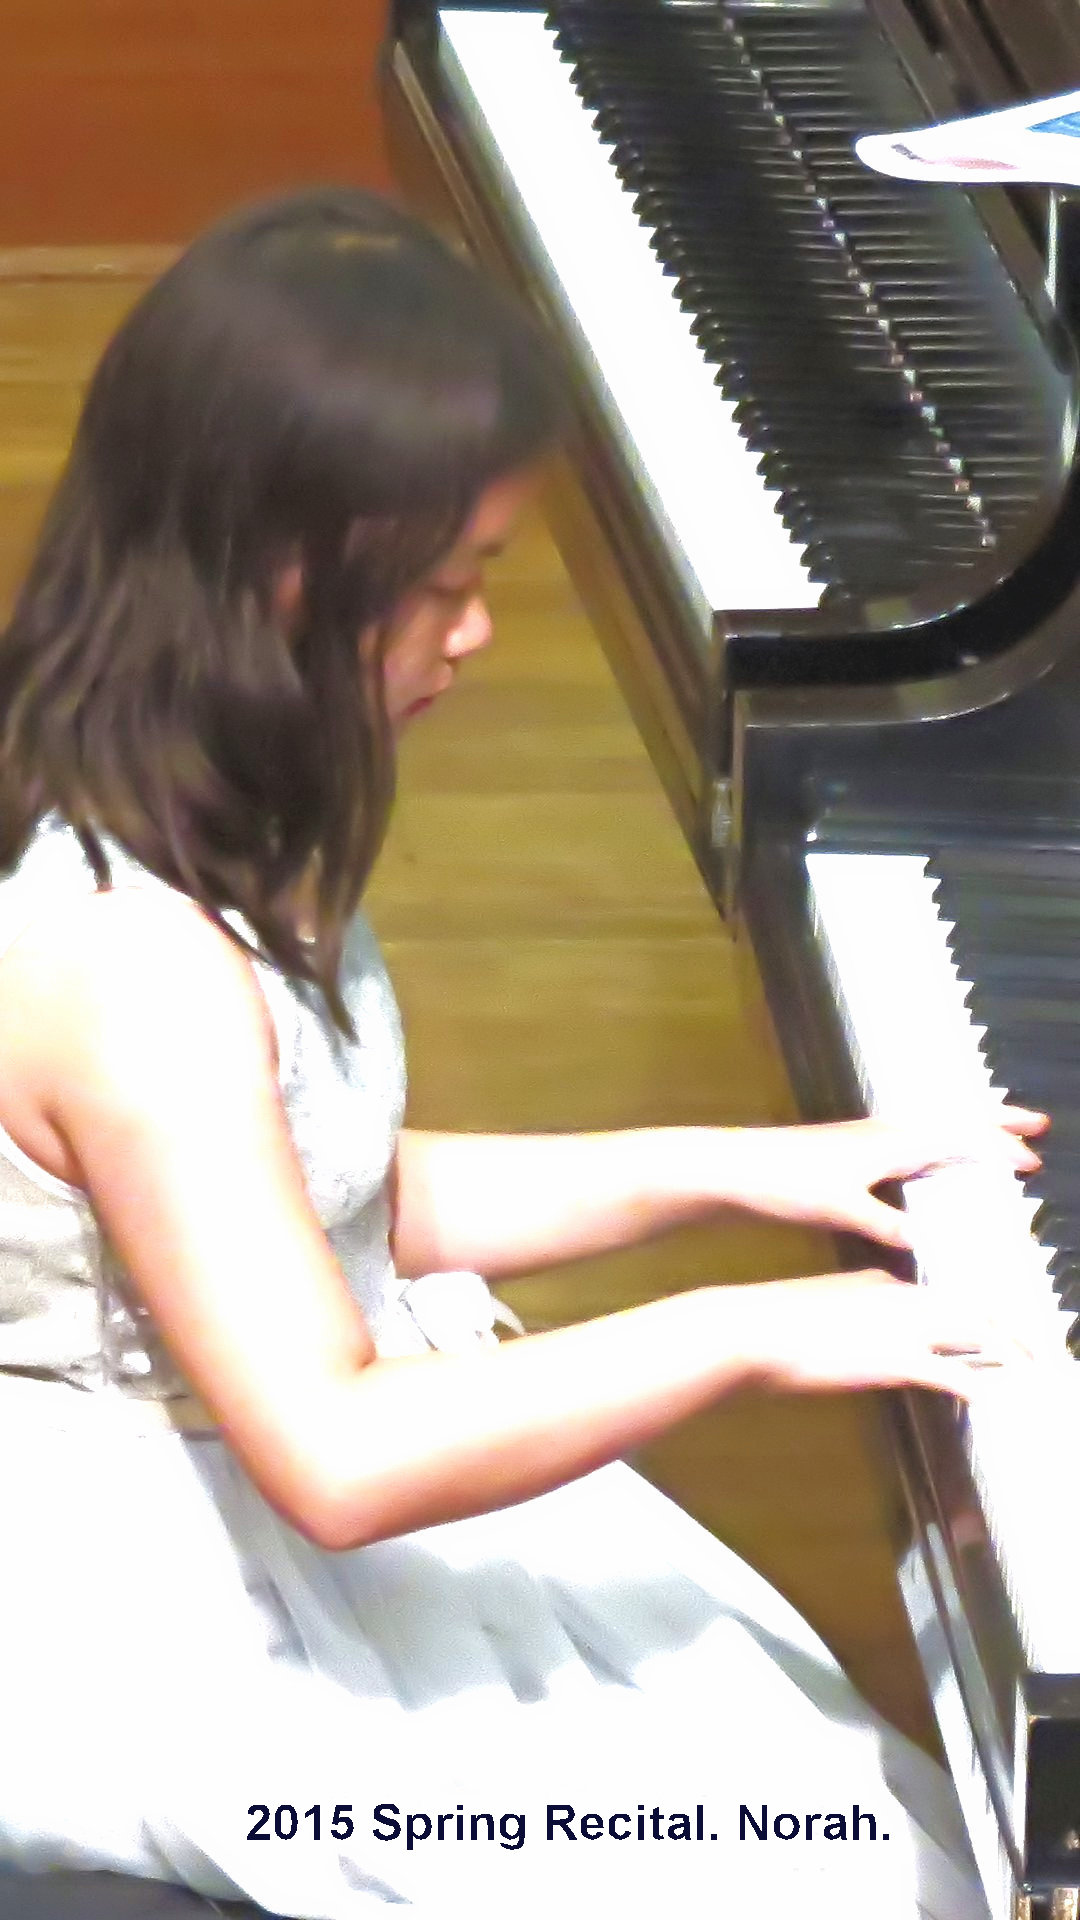 Norah playing at 2015 Spring Recital